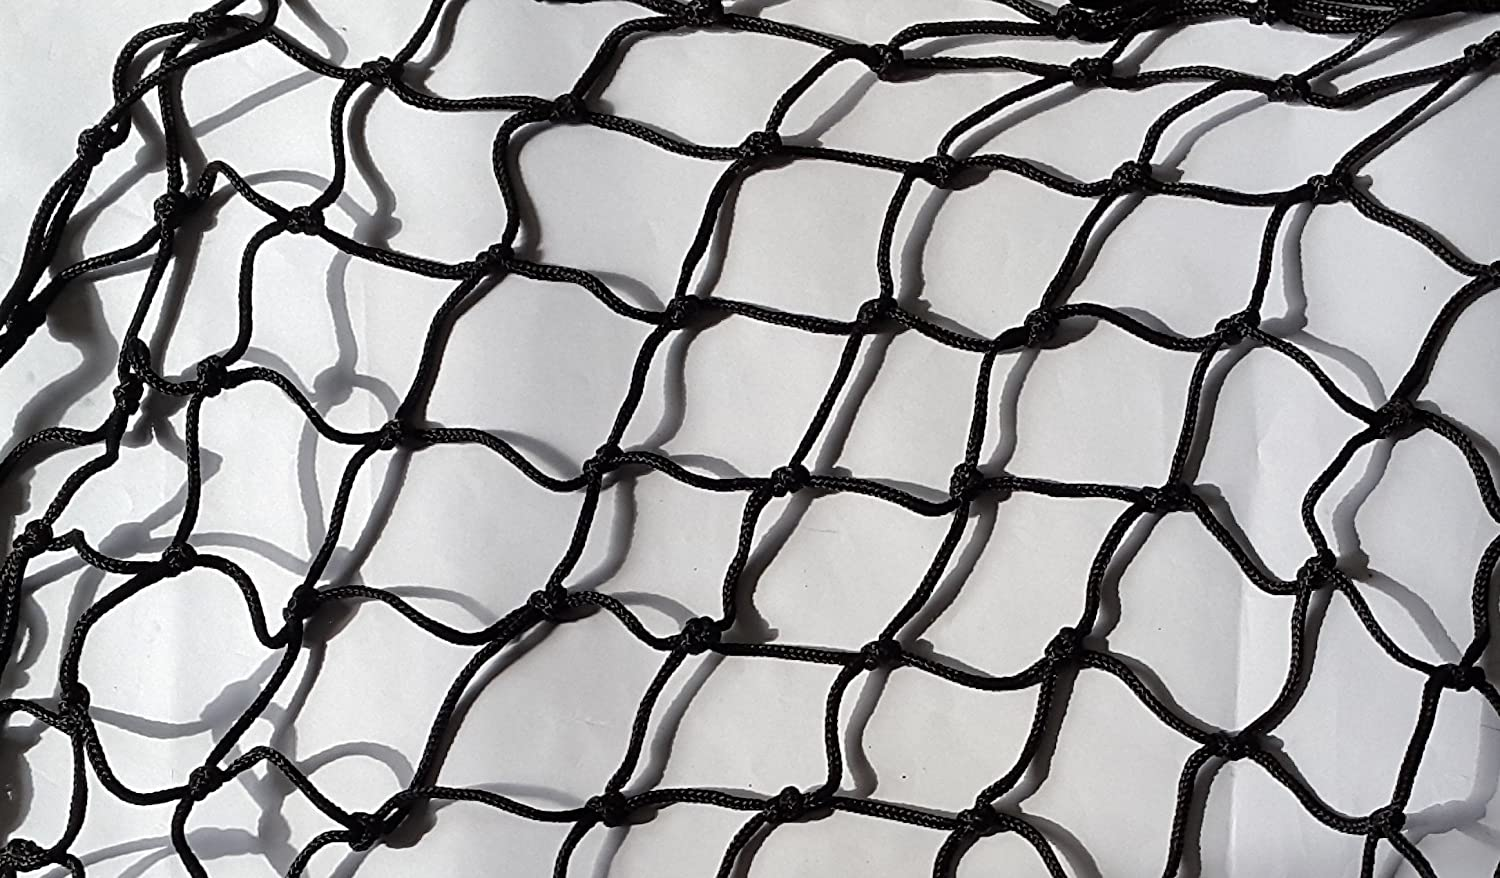 70x70mm 4mm Braided String Netting Pool/Pond/Cargo Cover 1mx1m Black HOMEHOBBY